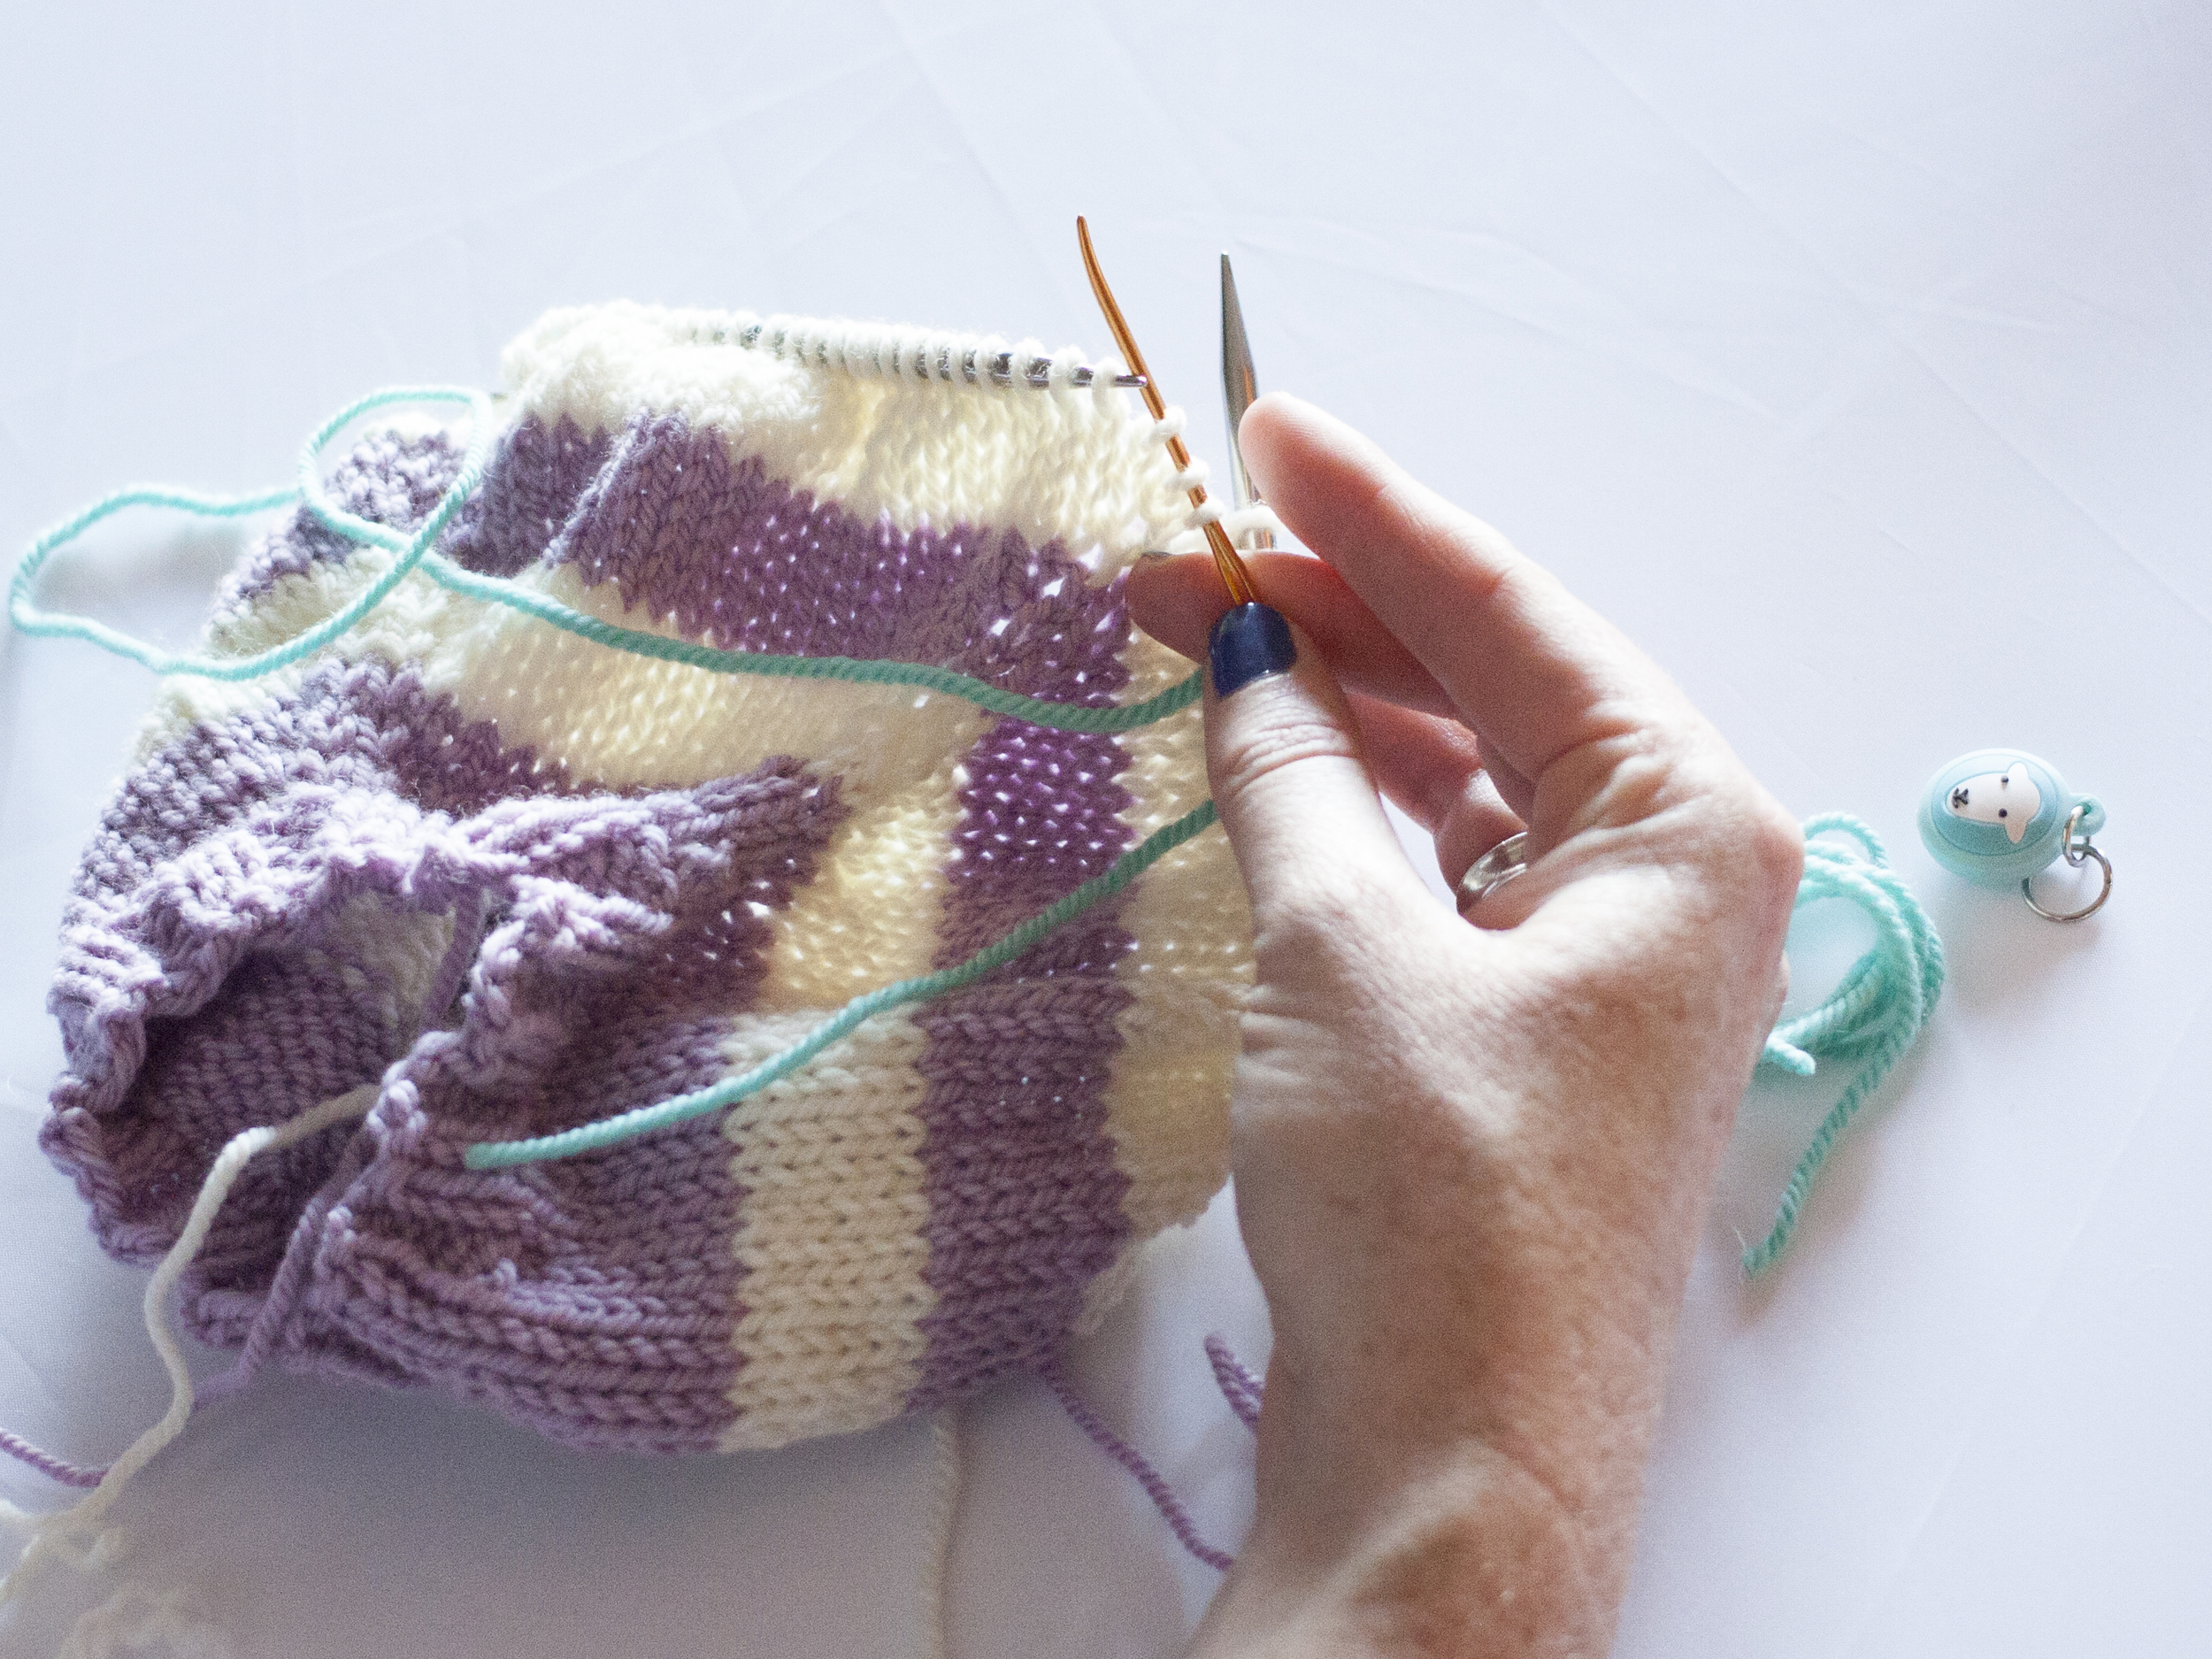 Moving stitches to waste yarn